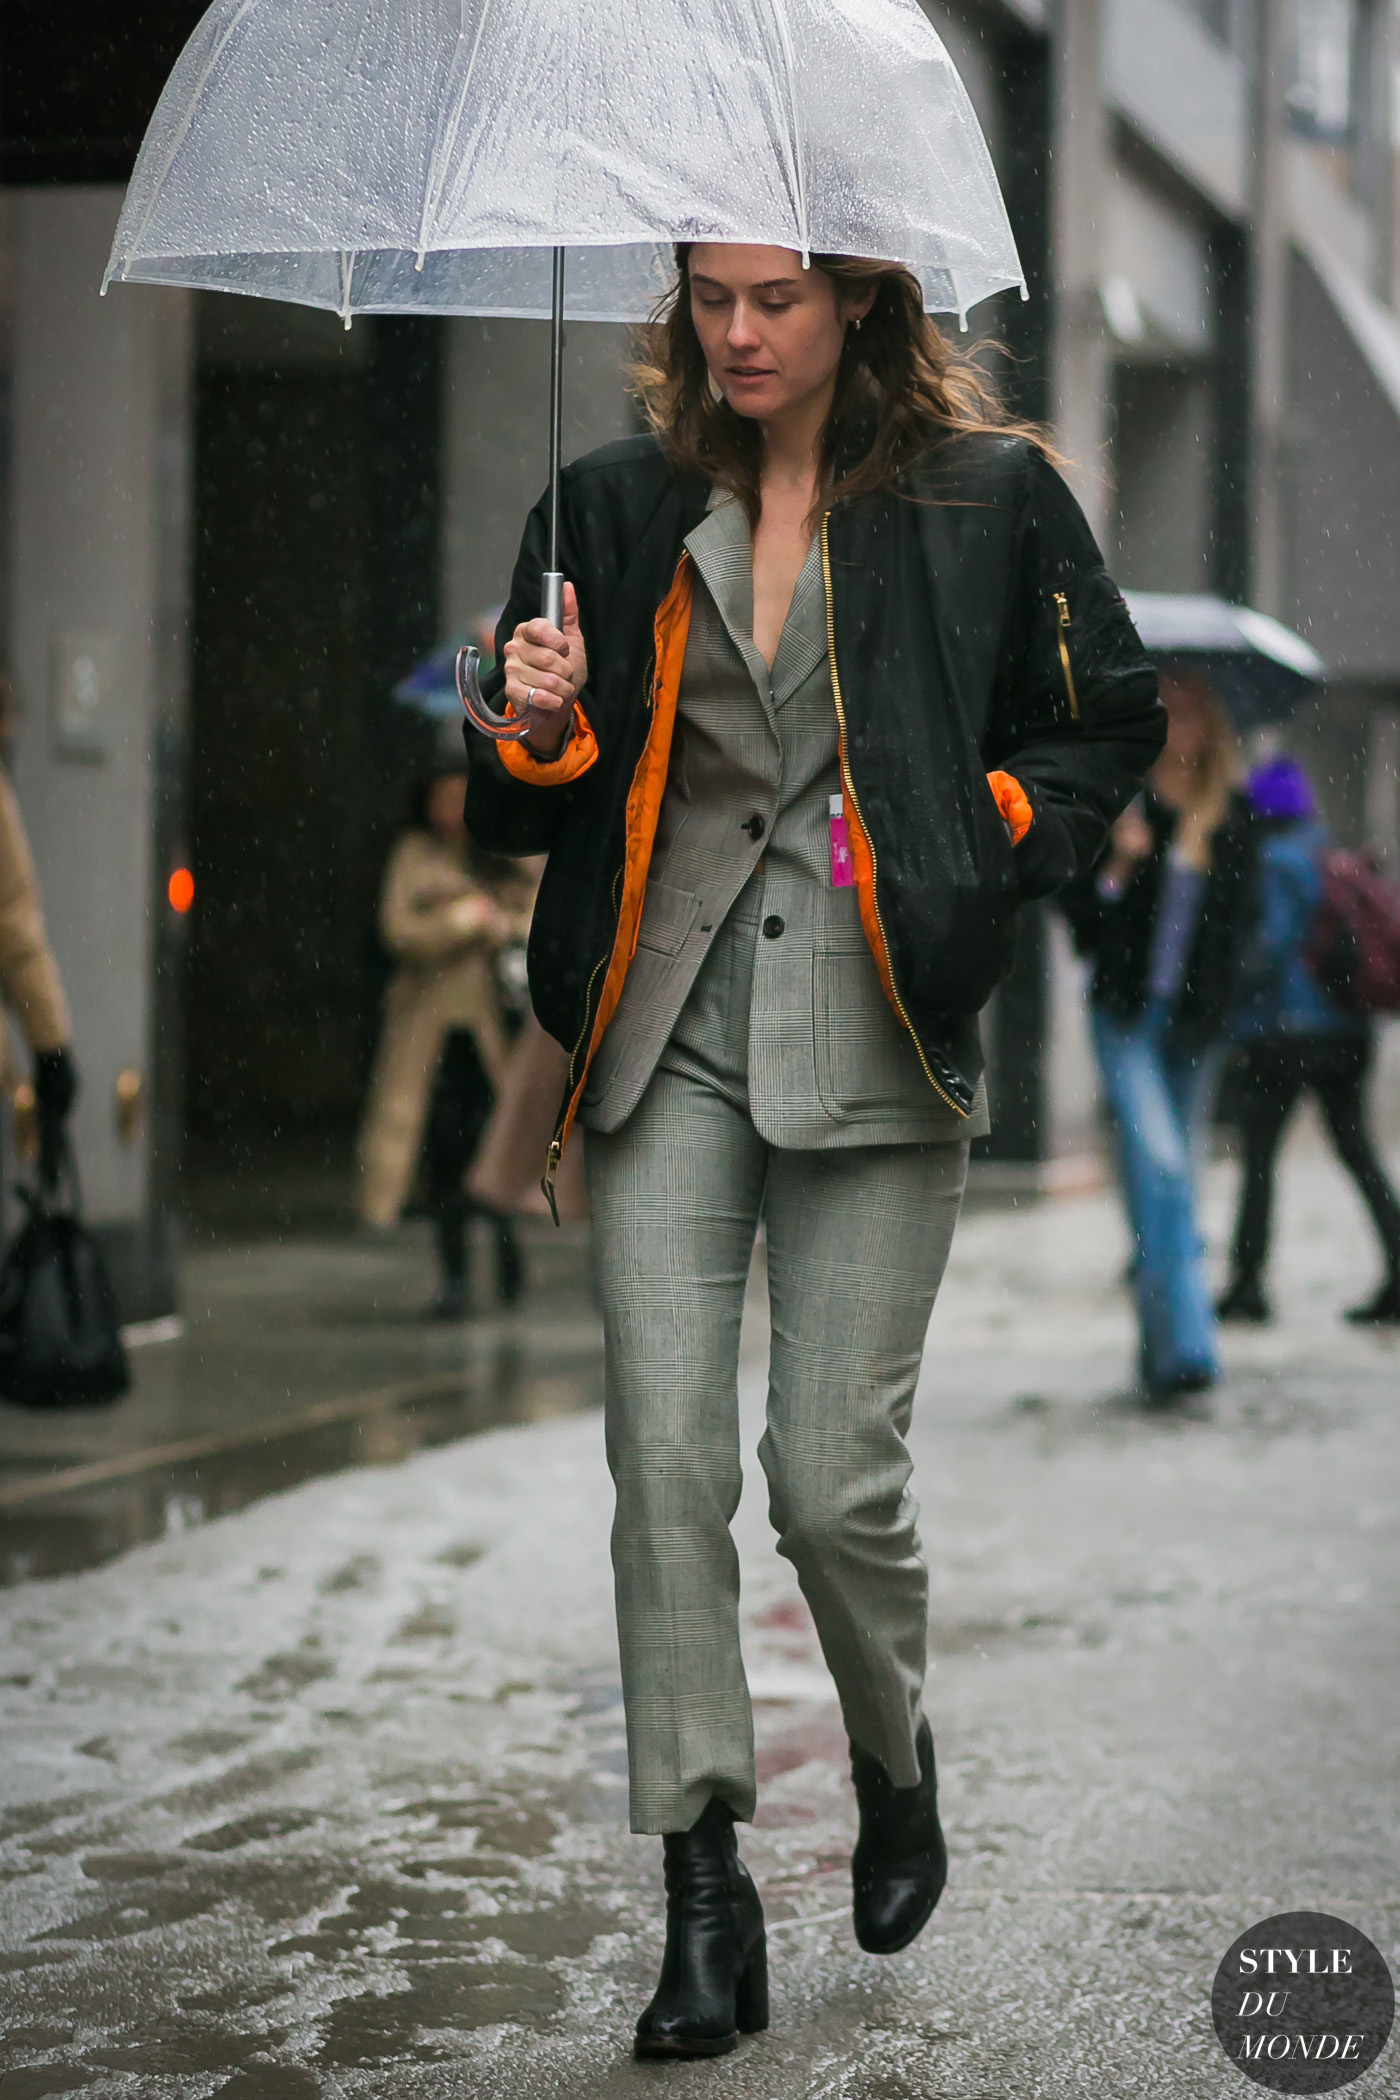 After Tome by STYLEDUMONDE Street Style Fashion Photography0E2A3020